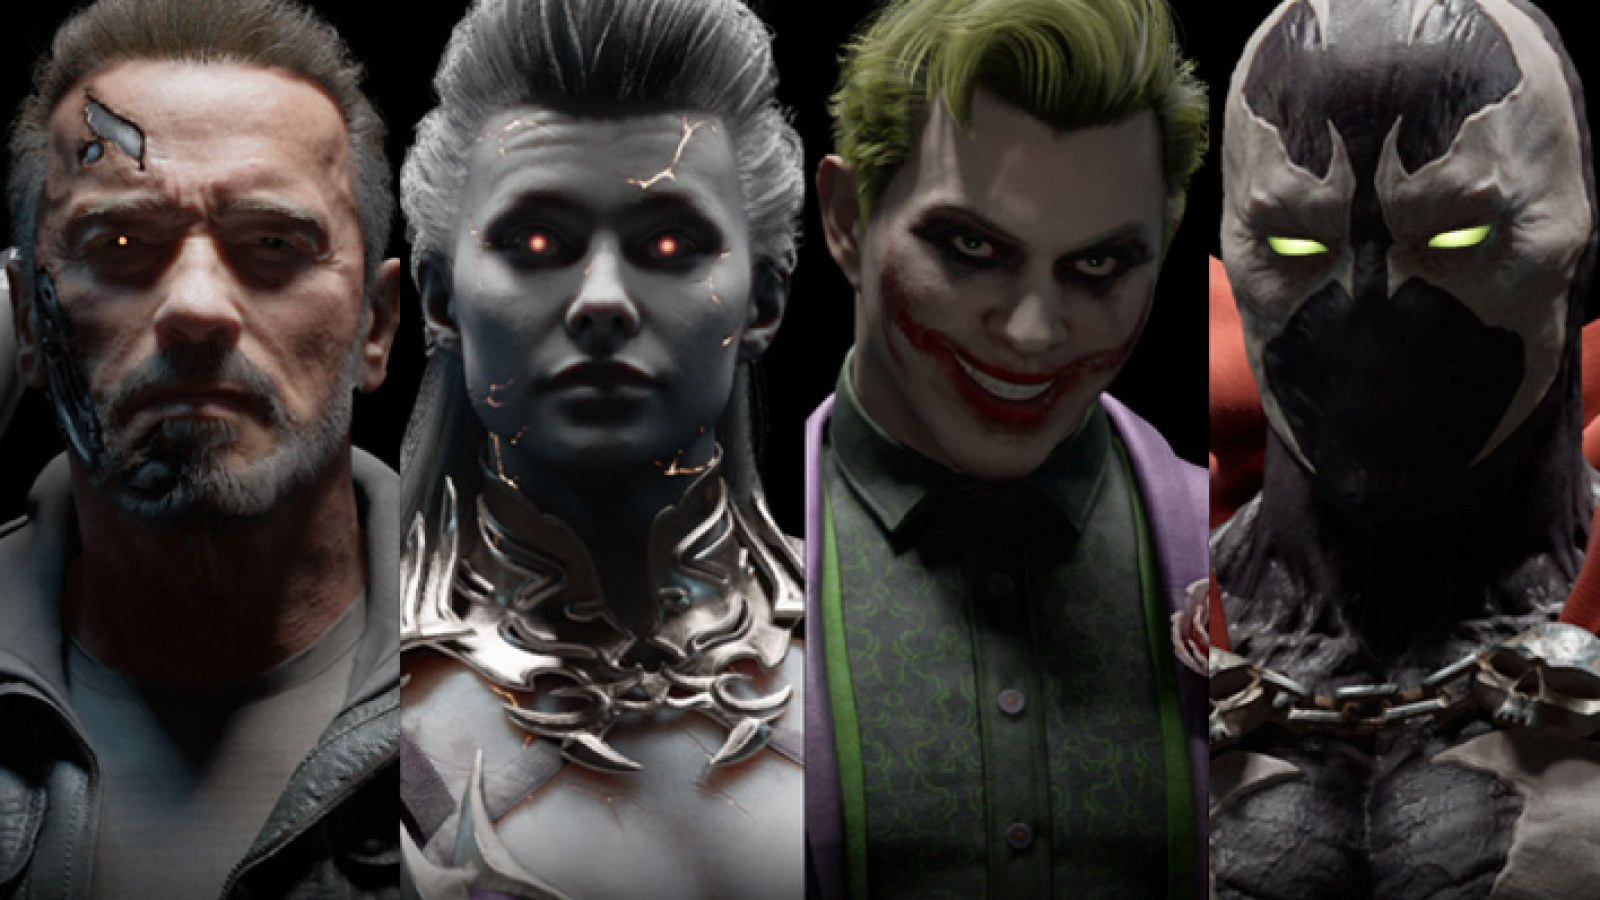 Mortal Kombat 11 Reveals Joker And Terminator As Next Dlc Characters In Kombat Pack